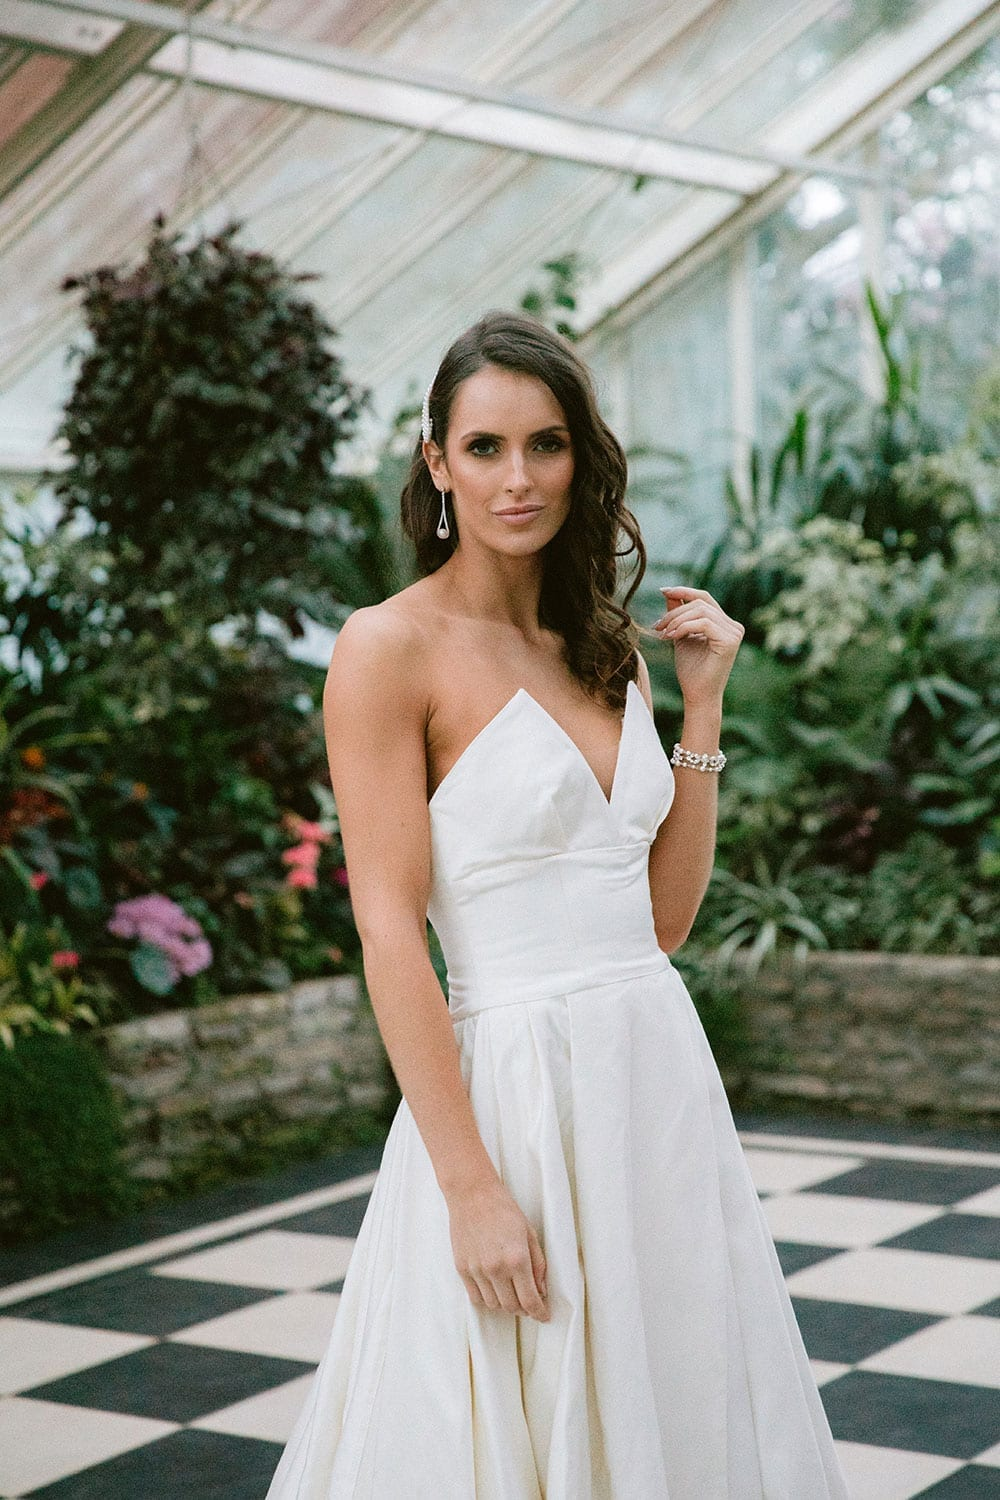 Model wearing Vinka Design Germaine Wedding Dress, a strapless dramatic wedding dress with split in a botanical garden greenhouse close up of top half